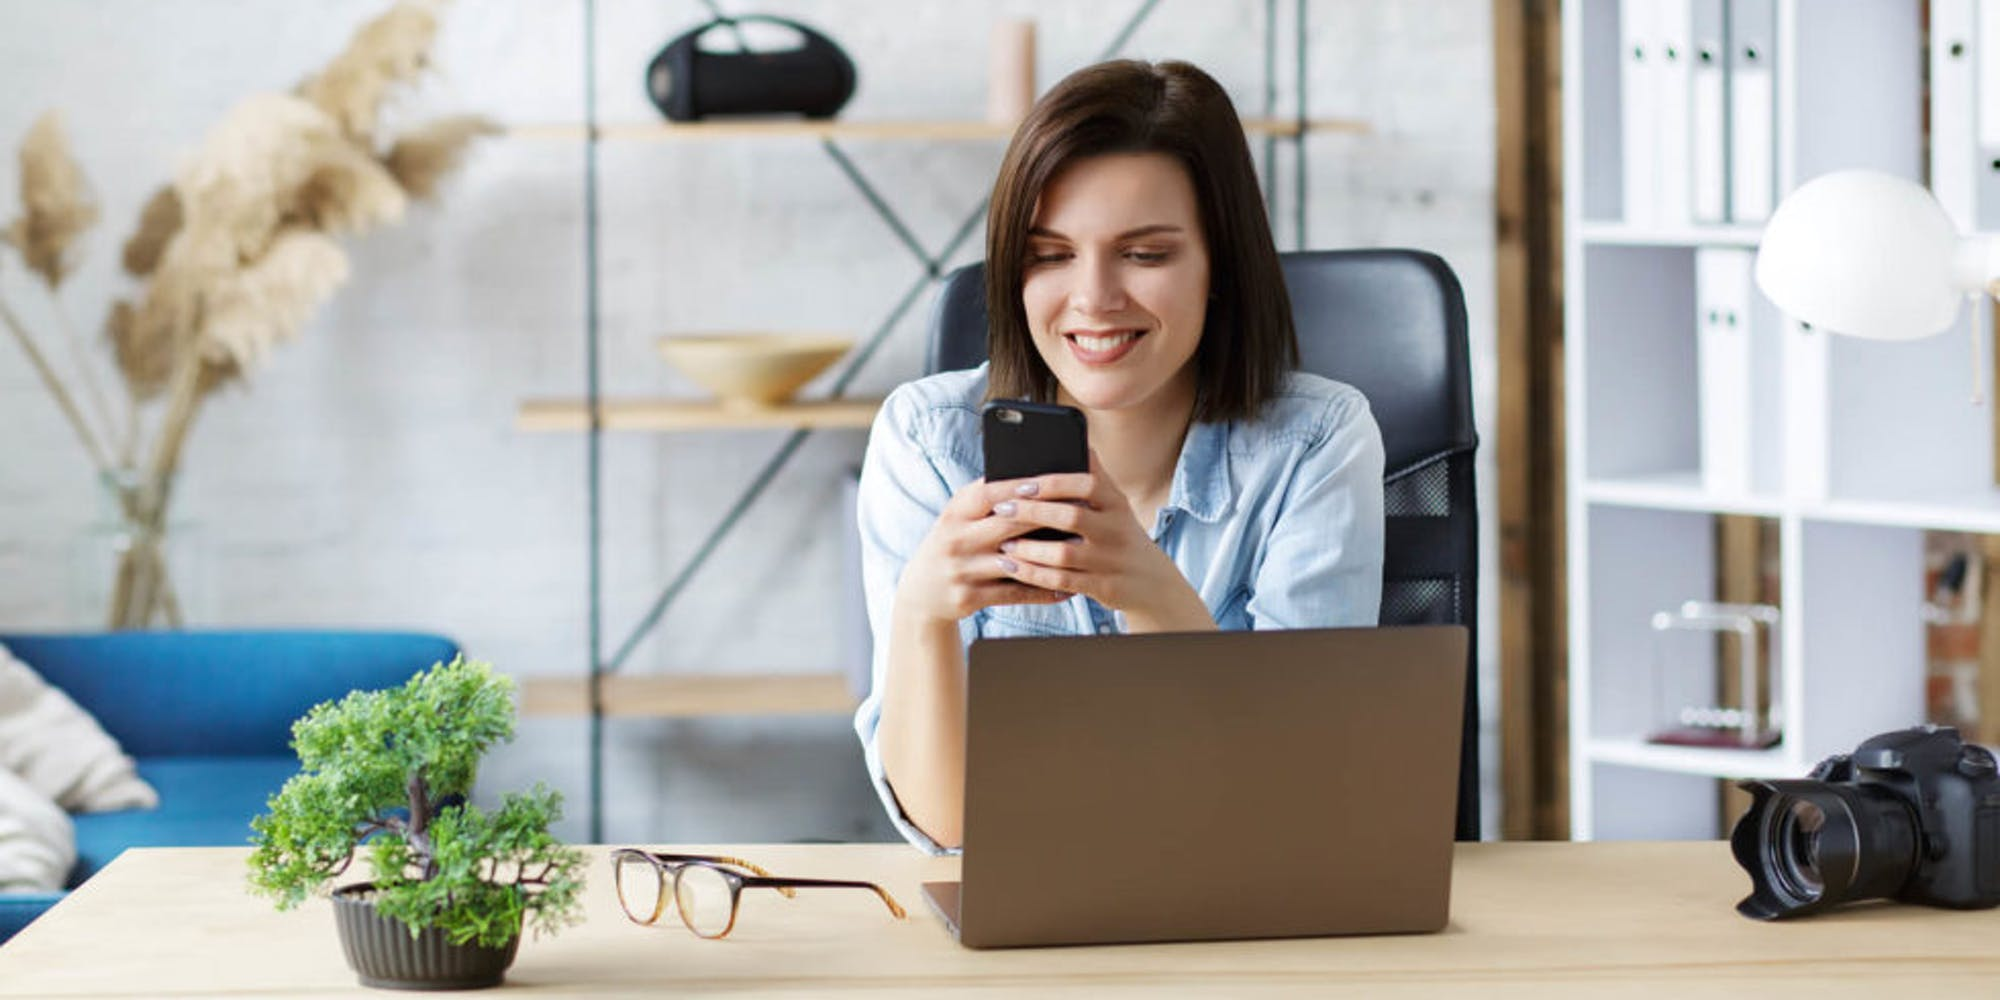 A woman smiling at her phone in her office